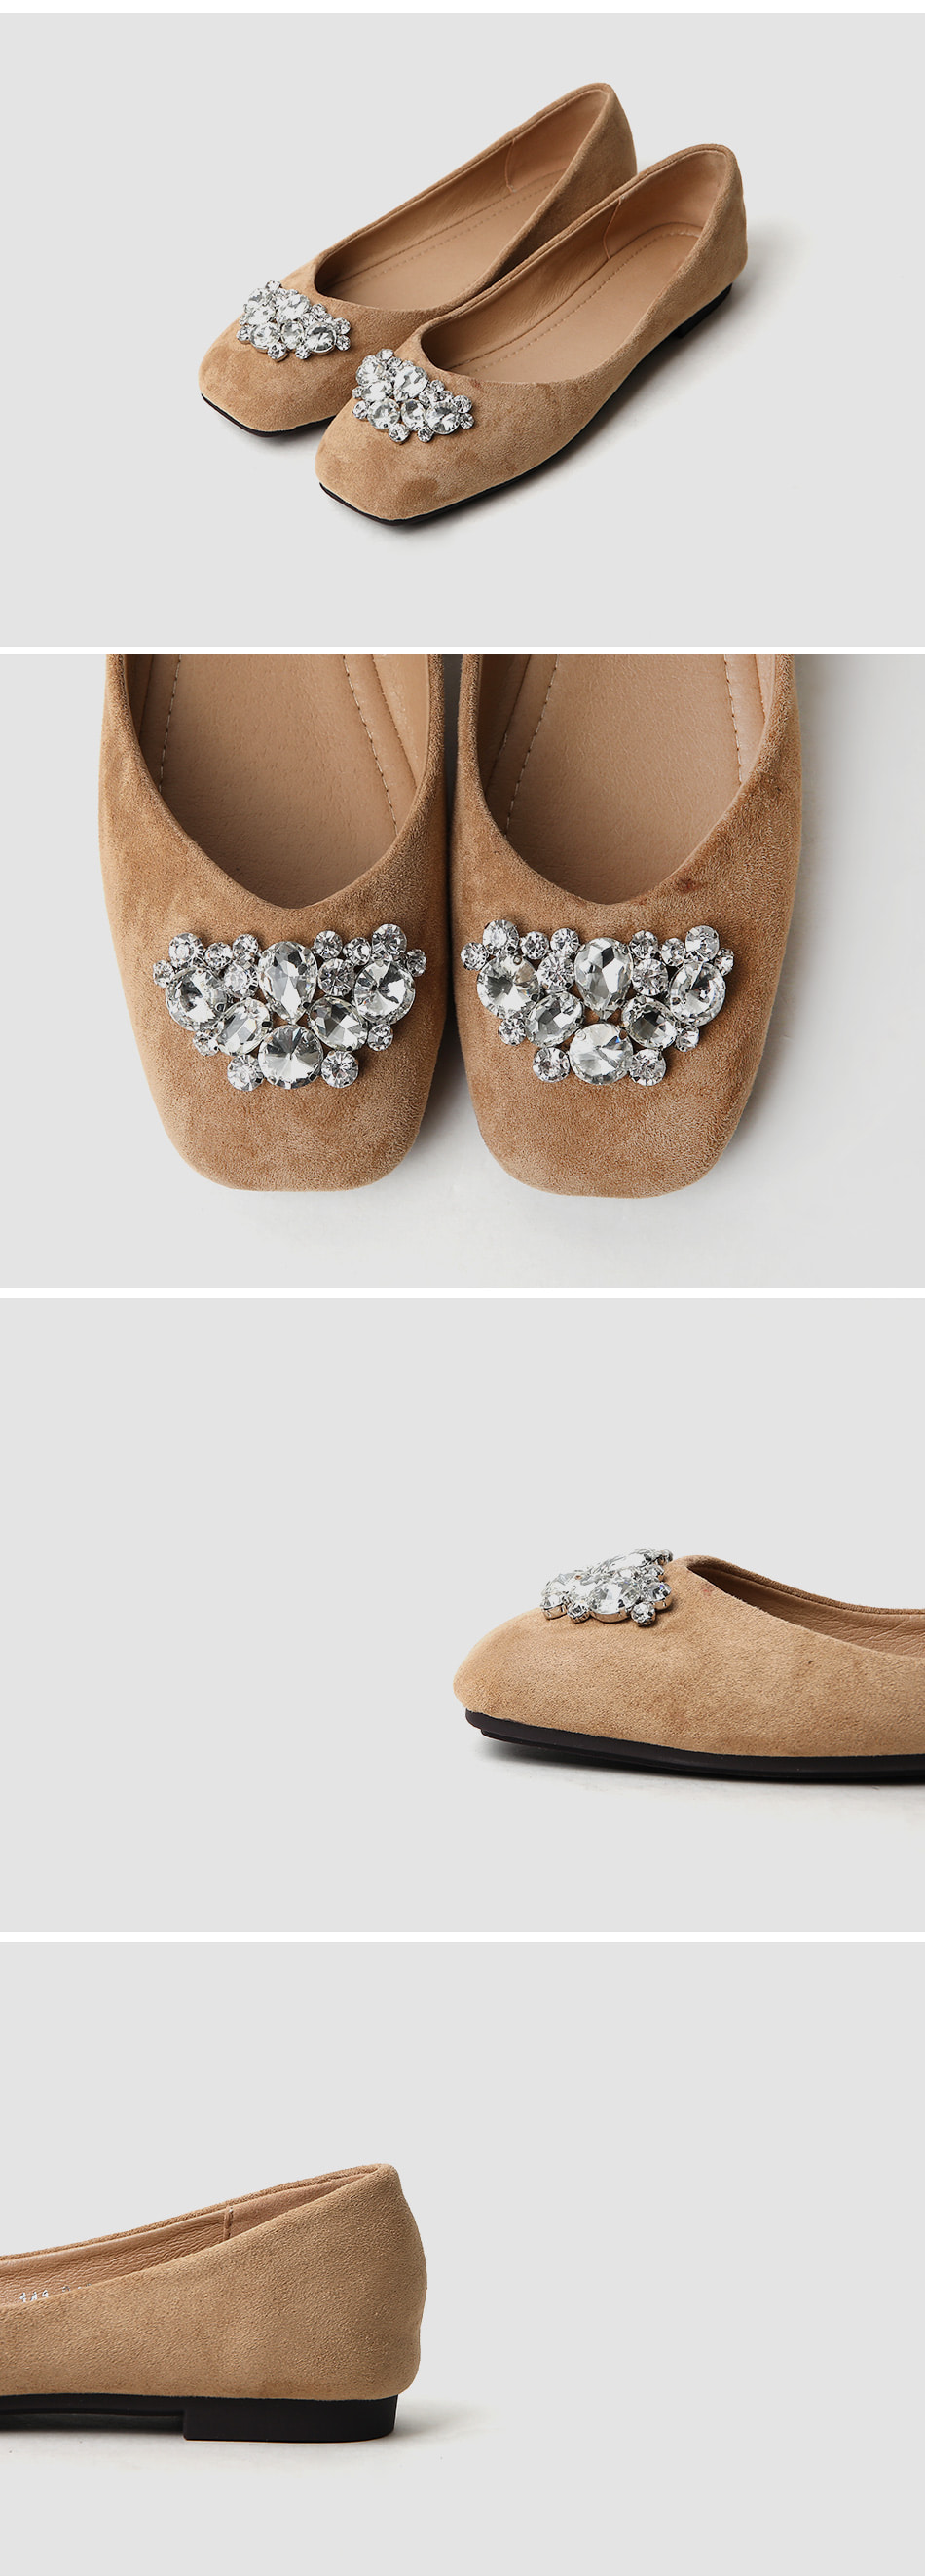 Noenz Flat Shoes 1cm